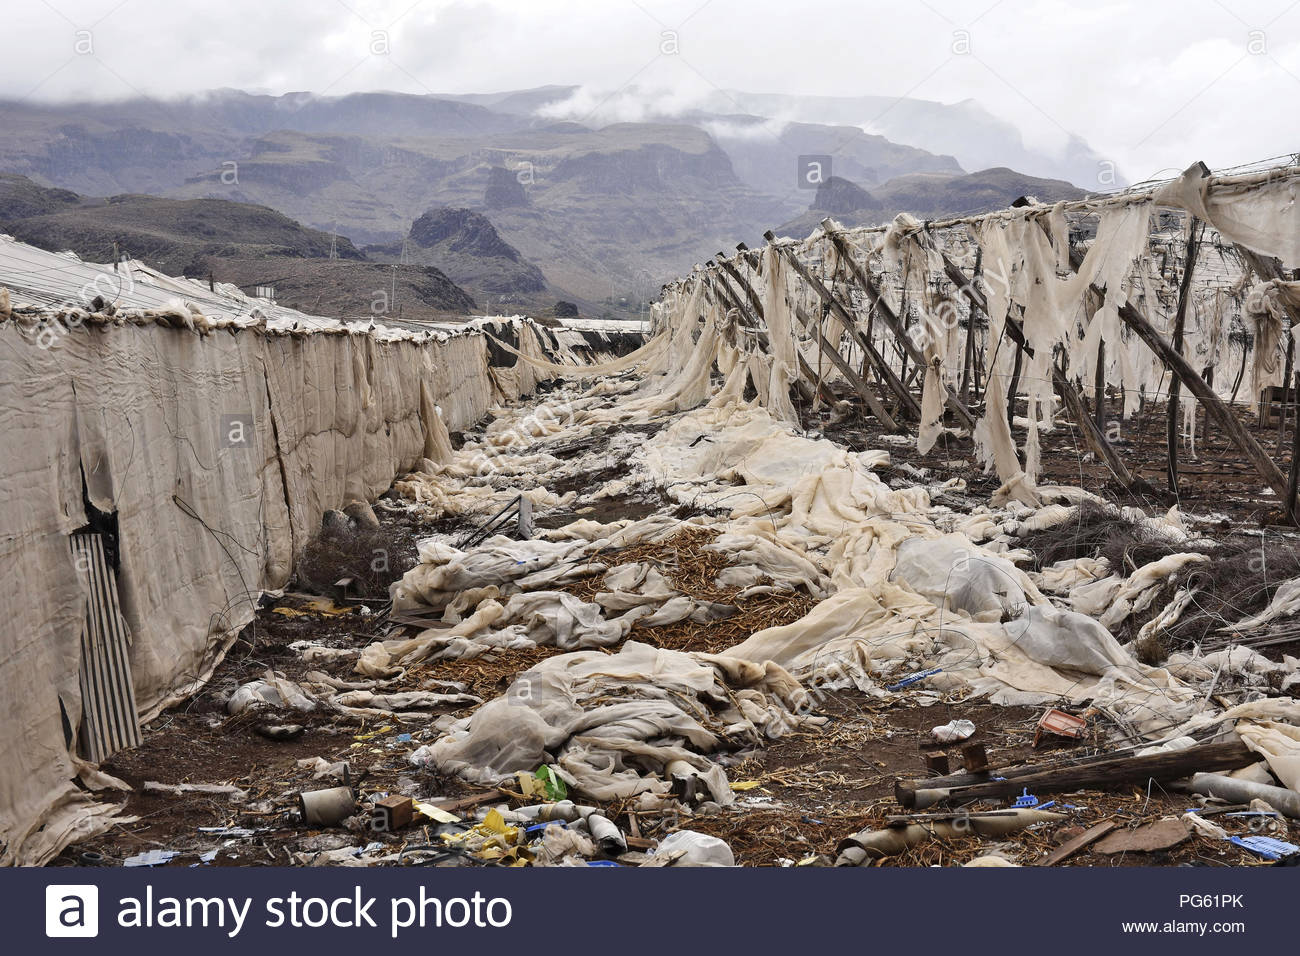 Abandoned broken greenhouse structures, plastic junk in Gran Canaria Canary Islands Macaronesia (Spain) - Stock Image